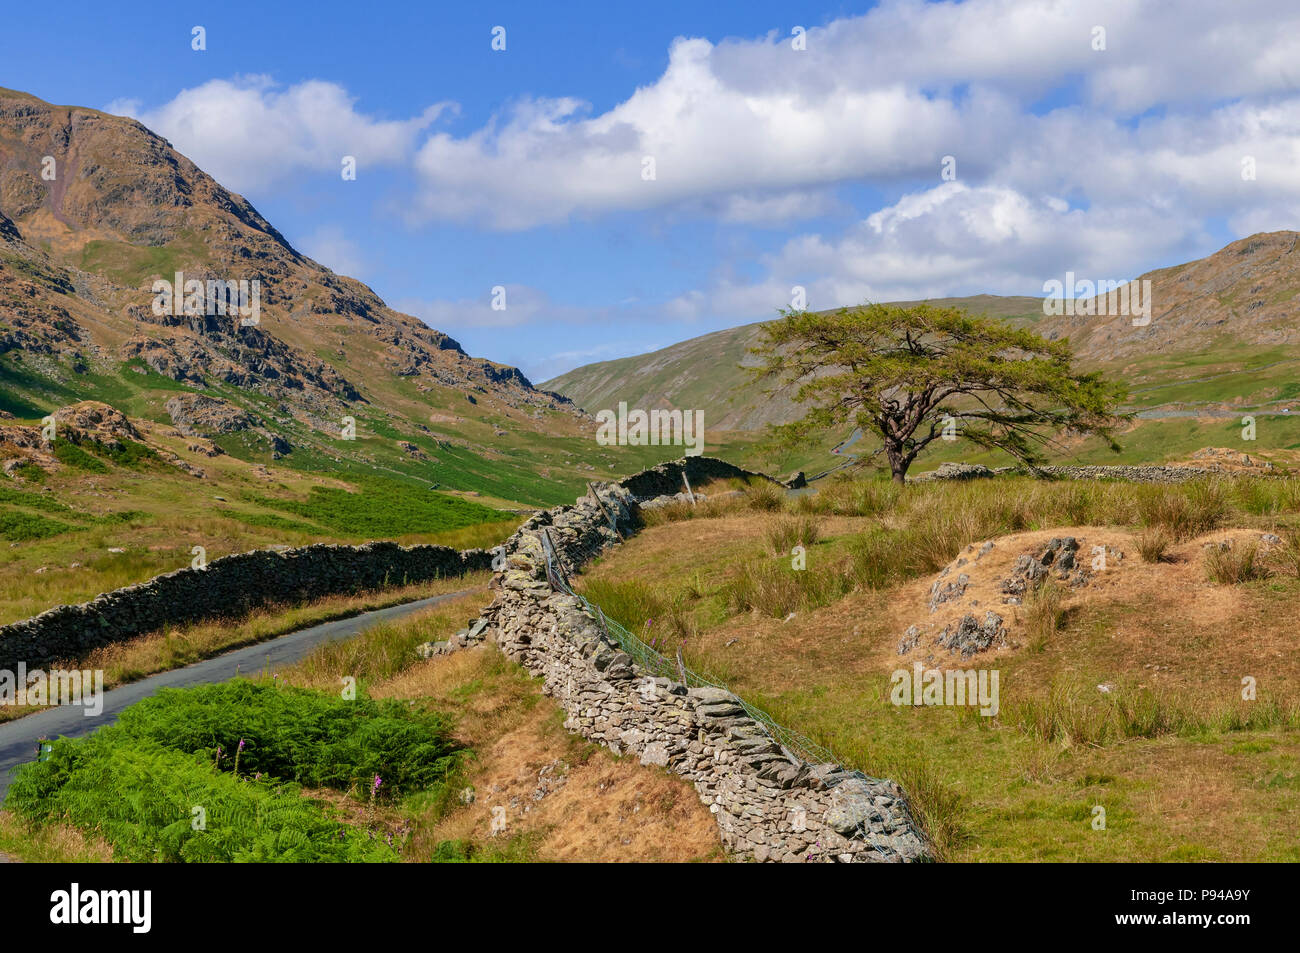 Lake District. Der Kampf Straße Nea rder Kirkstone Pass. Stockbild